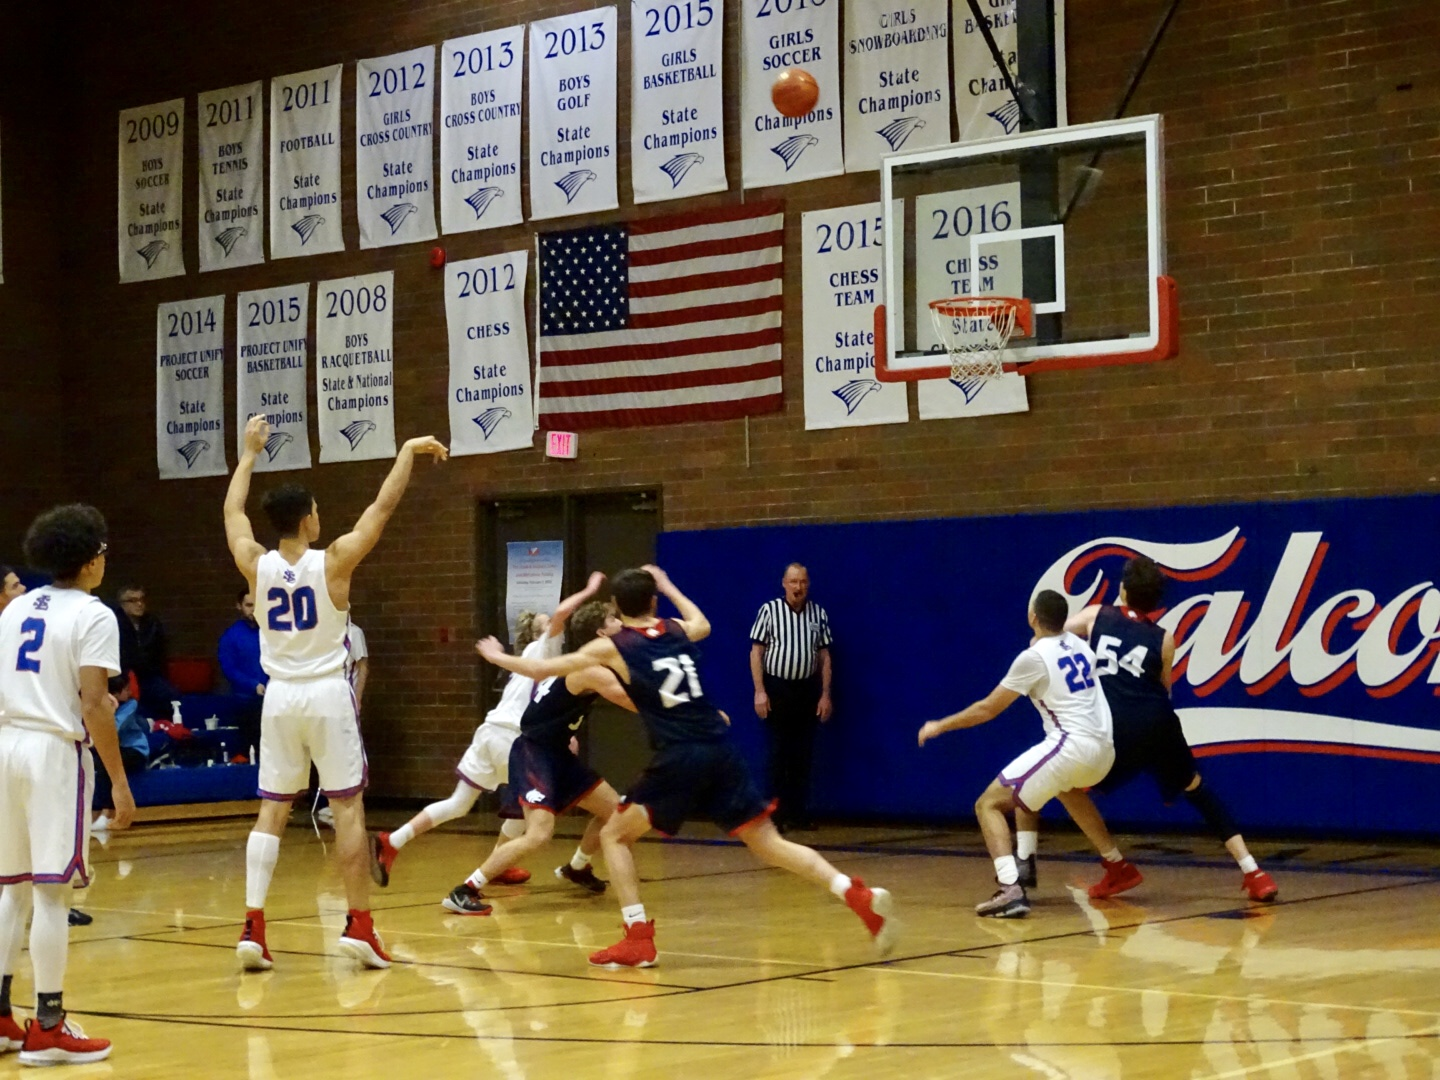 The Falcons in action in the brick oven on Dec. 7, 2018 against Black Hills.